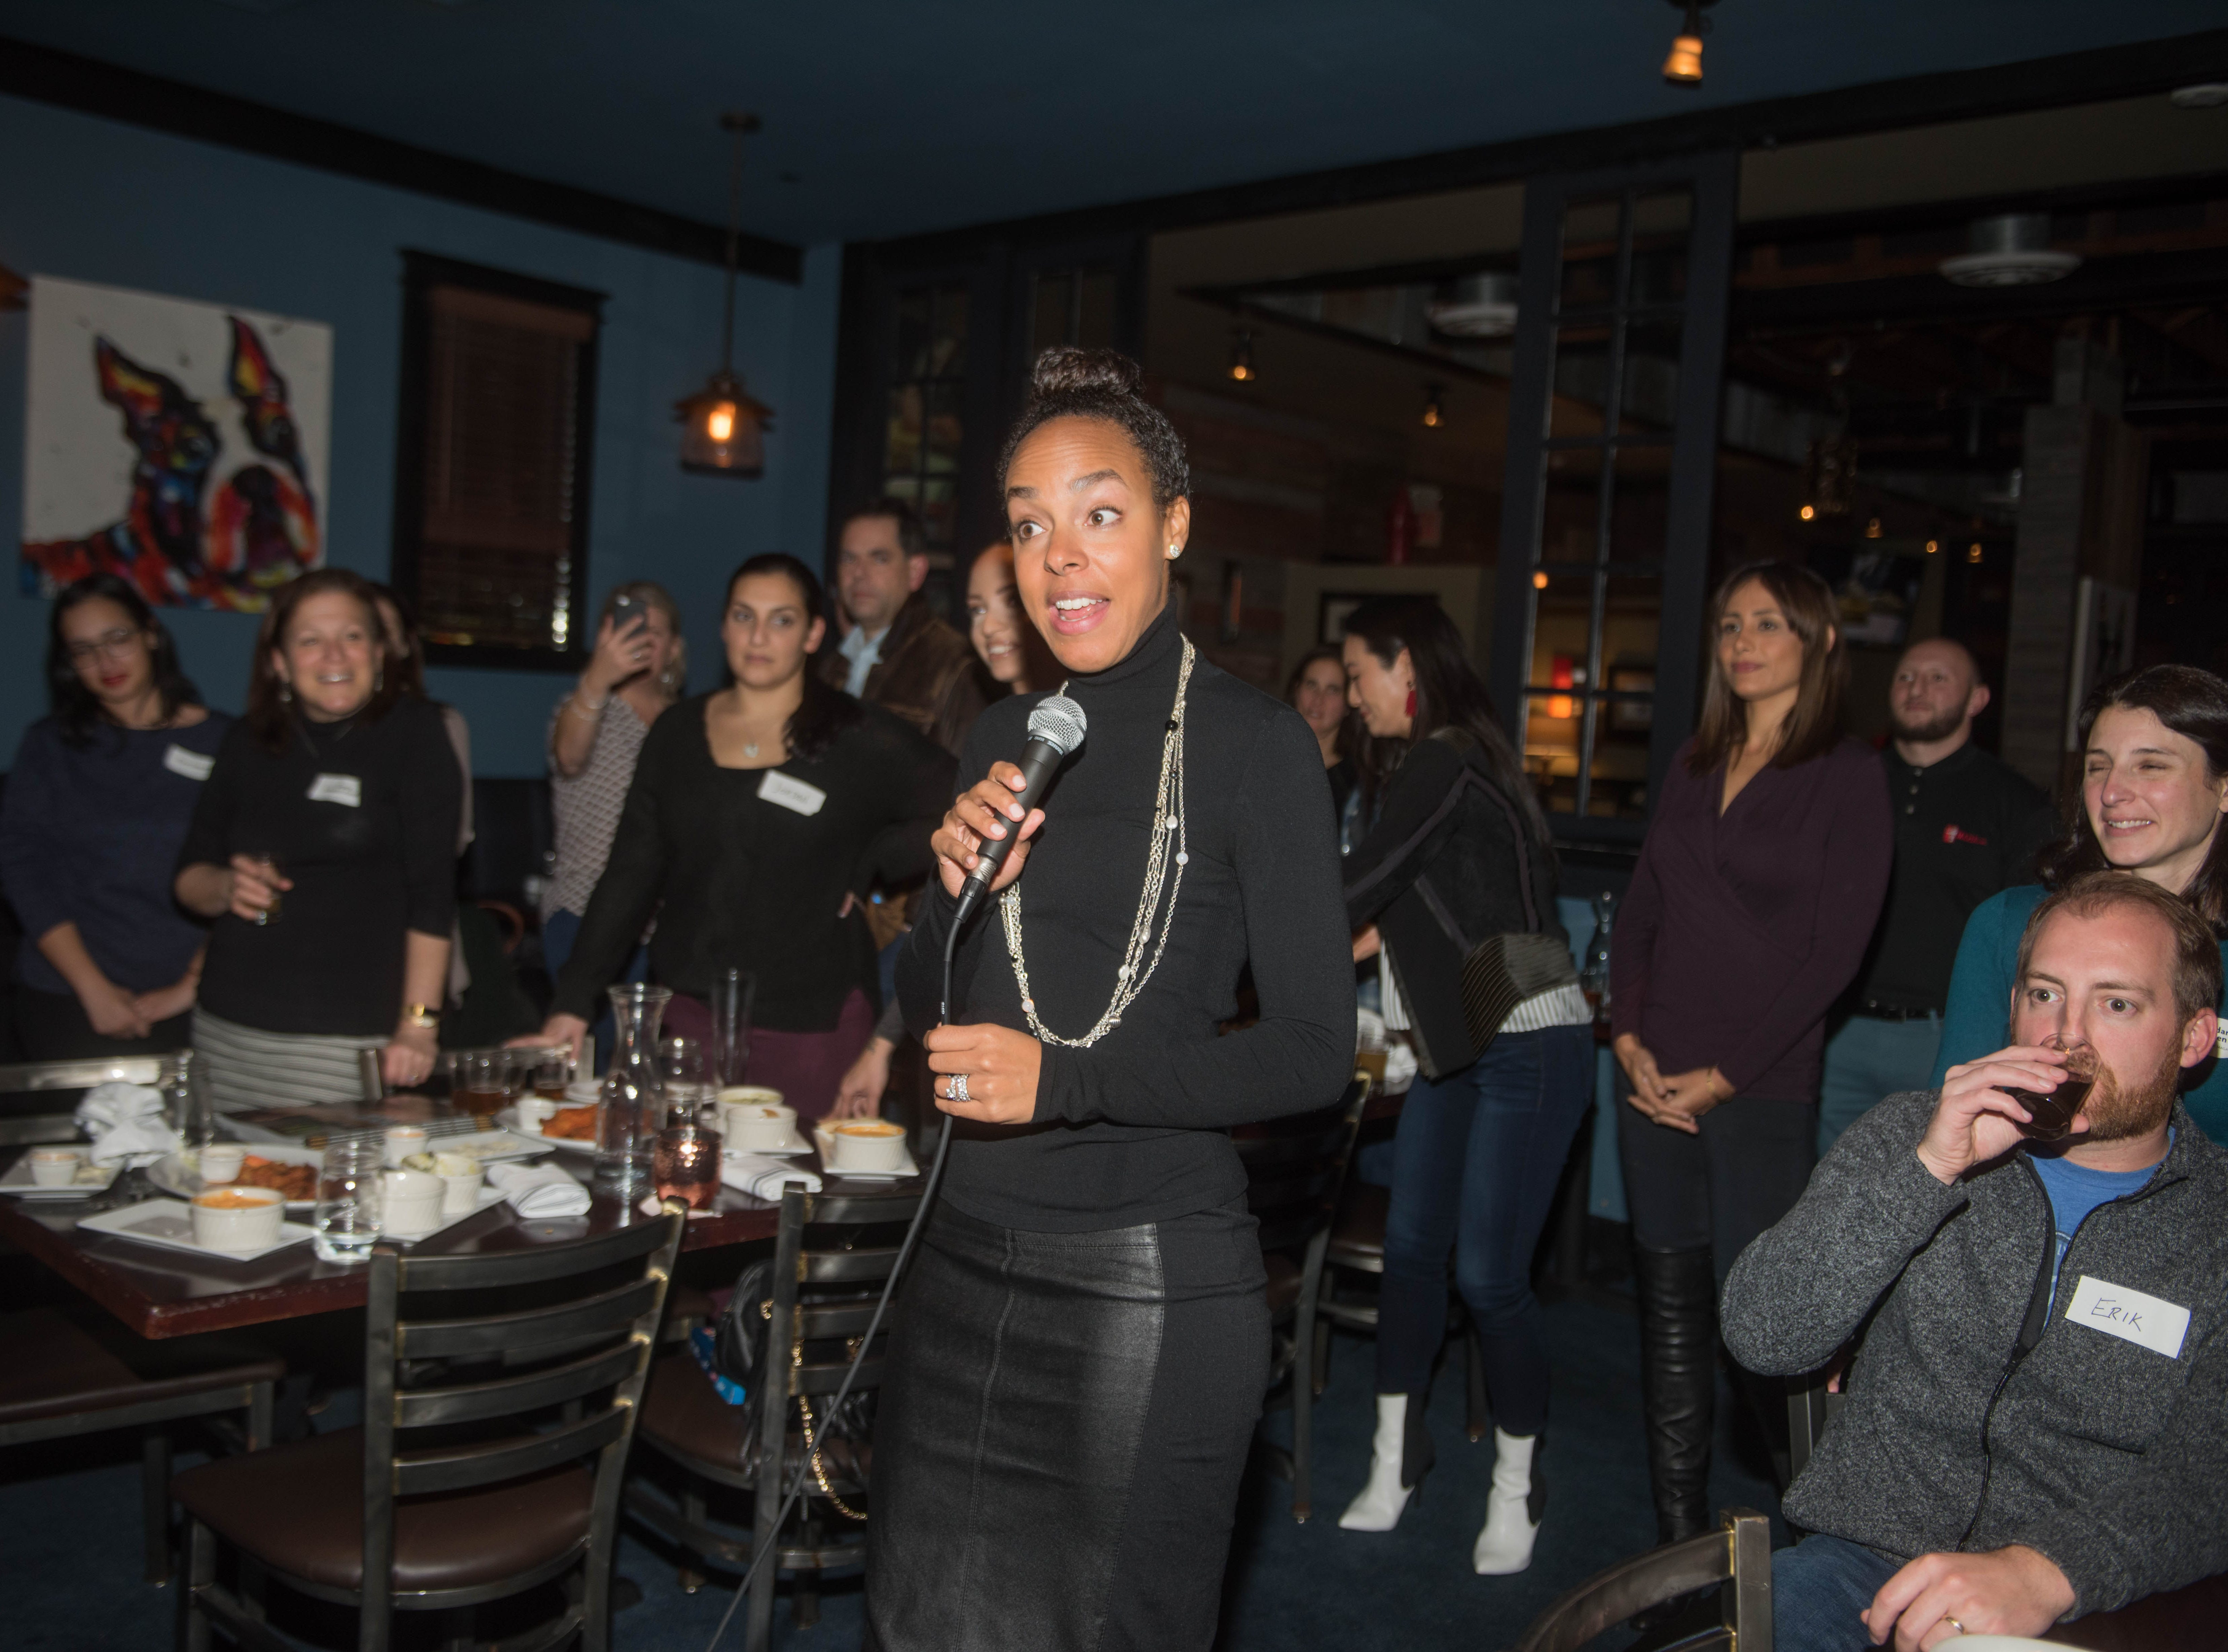 Lauran Tuck. (201) Magazine and NorthJersey.com held Taste Test Tuesday at he Dog and Cask in Rochelle Park with this months cover model, Lauran Tuck and former cover model and former NY Giant Justin Tuck. 11/13/2018